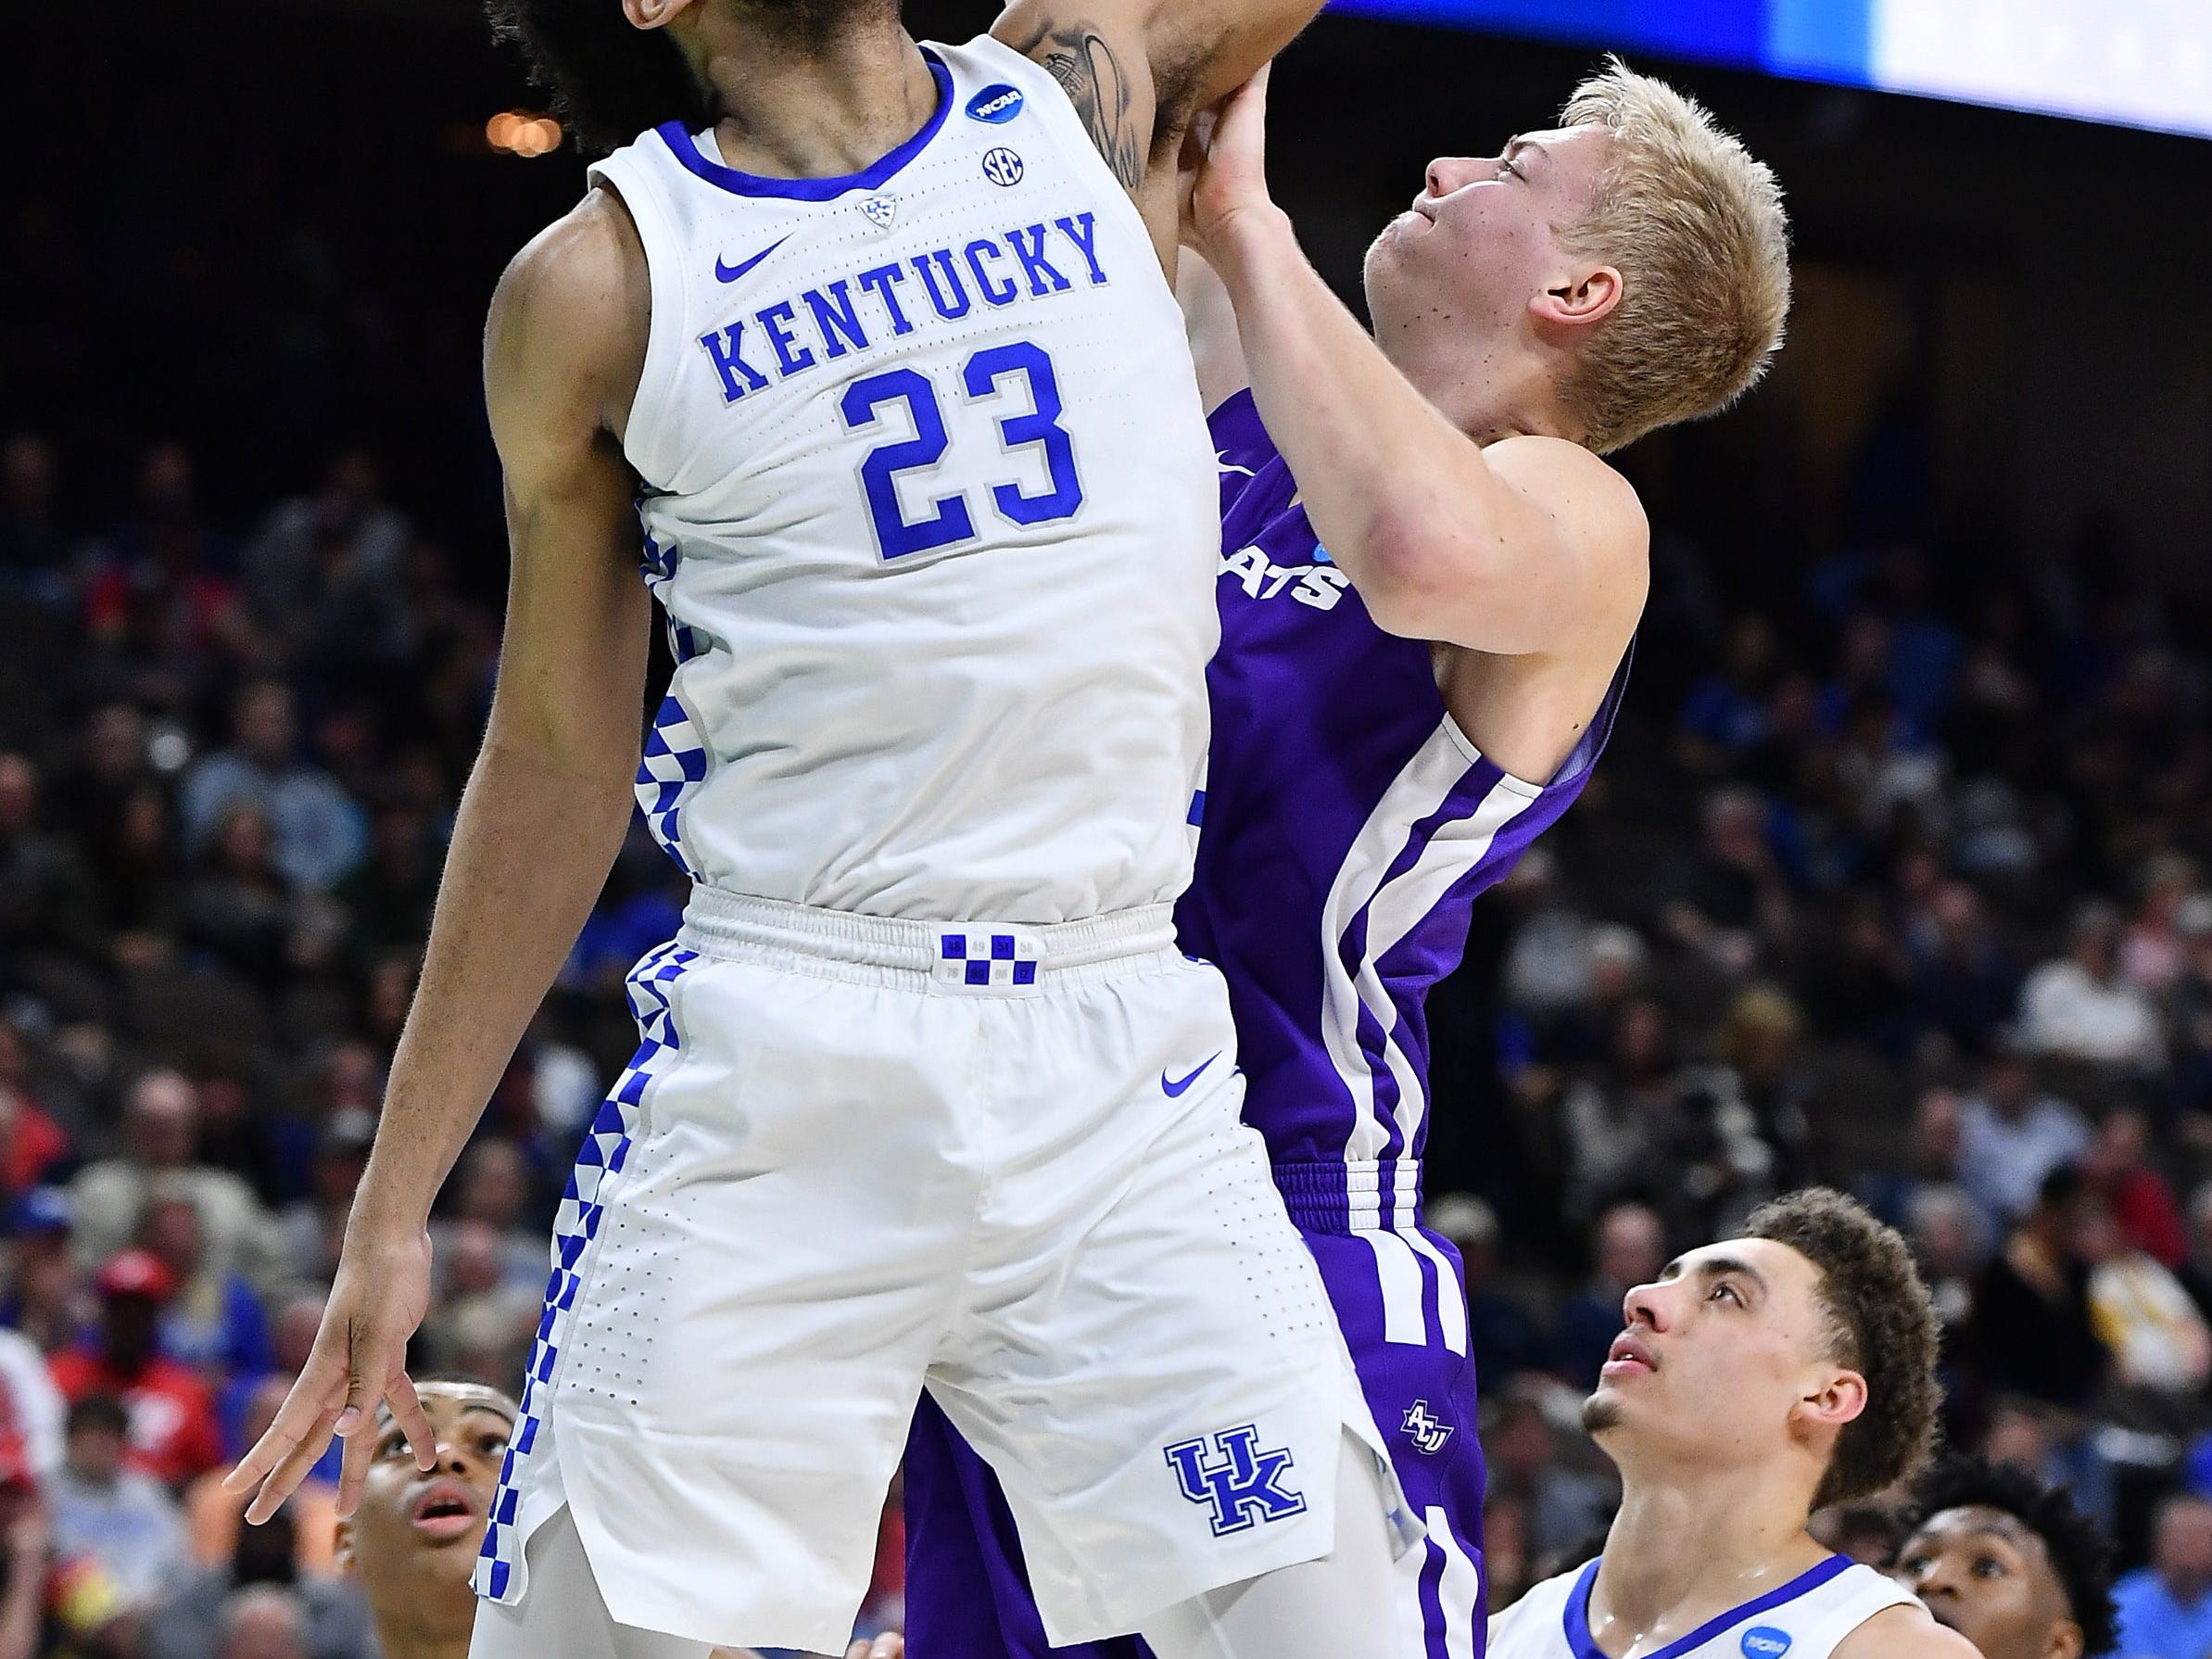 Mar 21, 2019; Jacksonville, FL, USA; Abilene Christian Wildcats center Kolton Kohl (34) shoots the ball as Kentucky Wildcats forward EJ Montgomery (23) defends during the first half in the first round of the 2019 NCAA Tournament at Jacksonville Veterans Memorial Arena. Mandatory Credit: John David Mercer-USA TODAY Sports